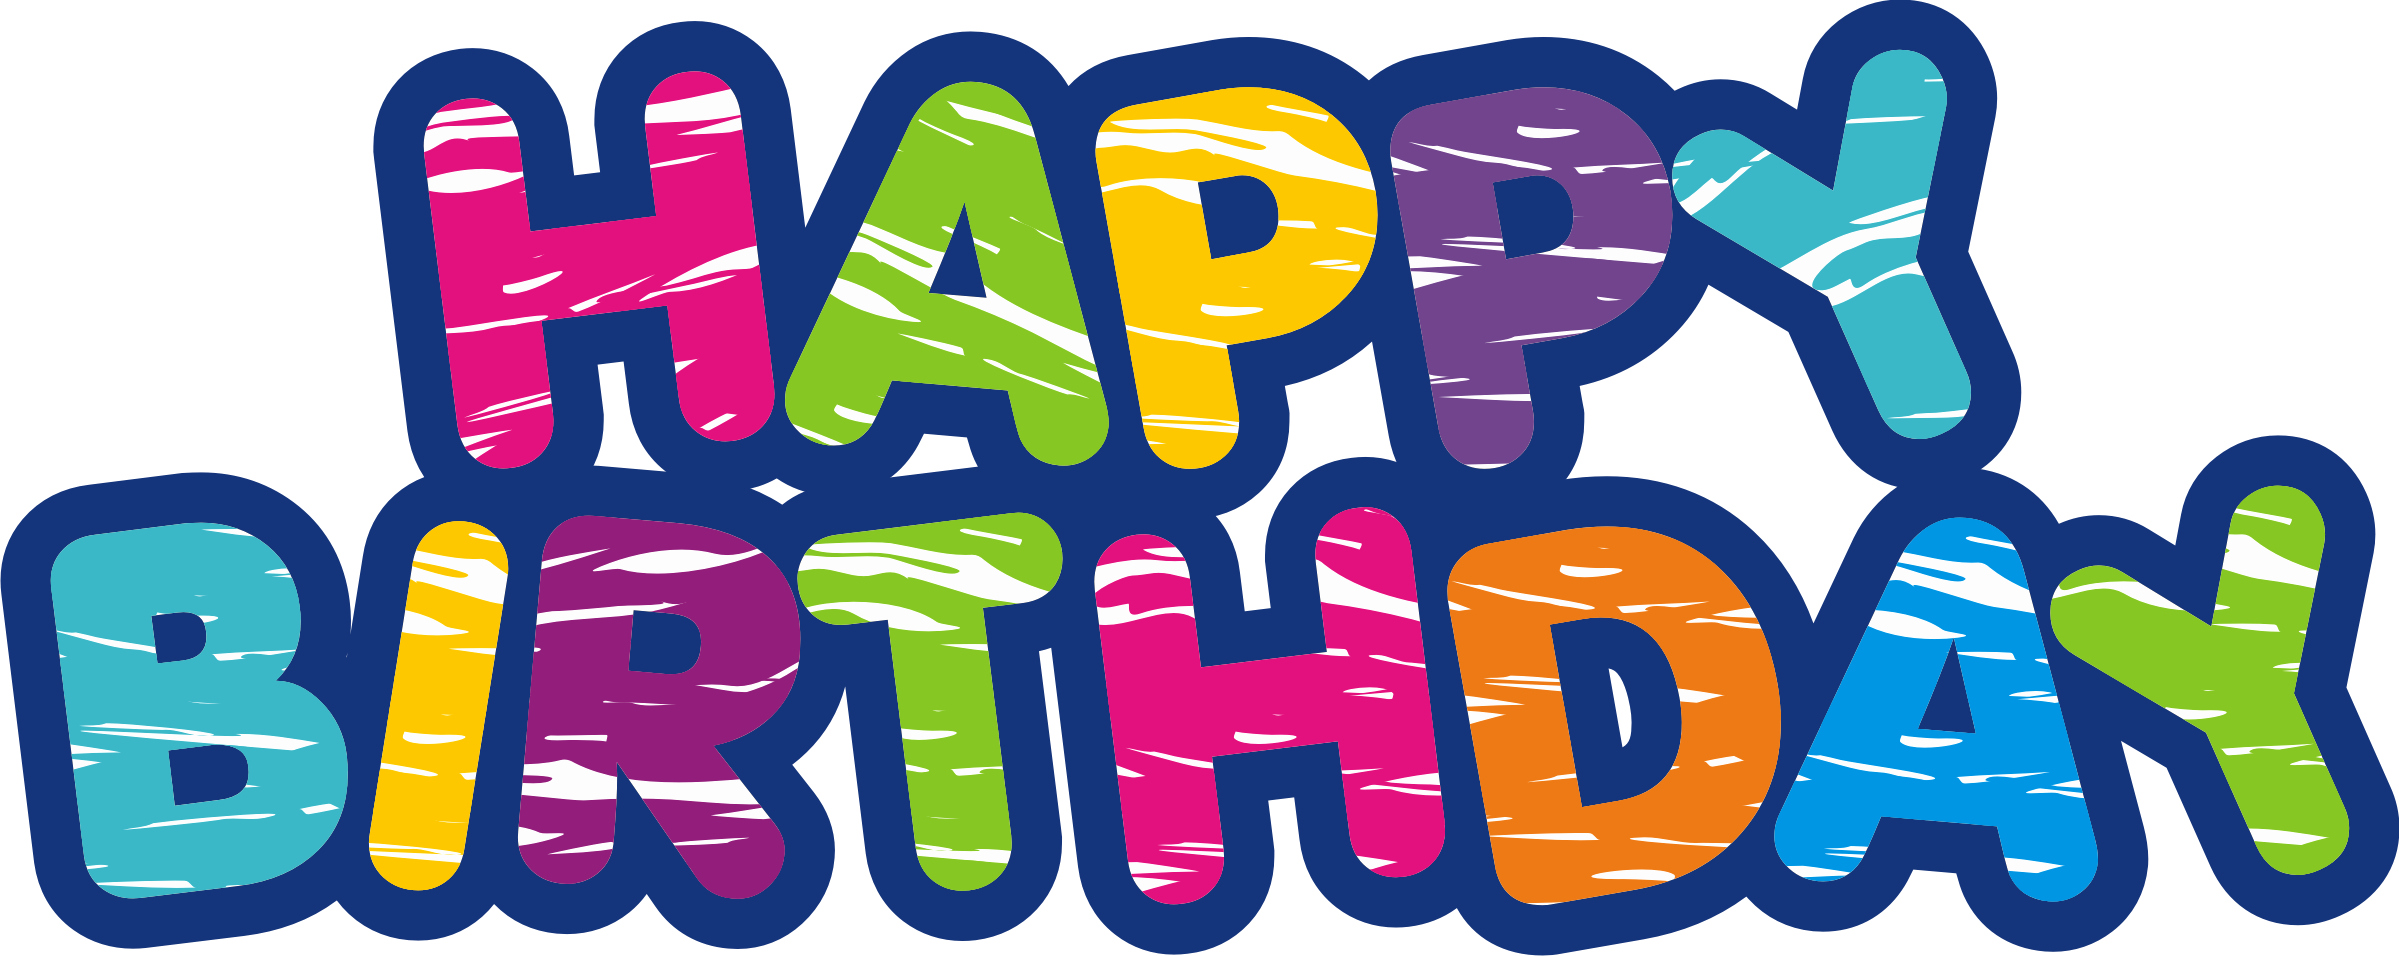 Happy Birthday Icons Free Luxury Happy Birthday Transparent Png Free Icons and